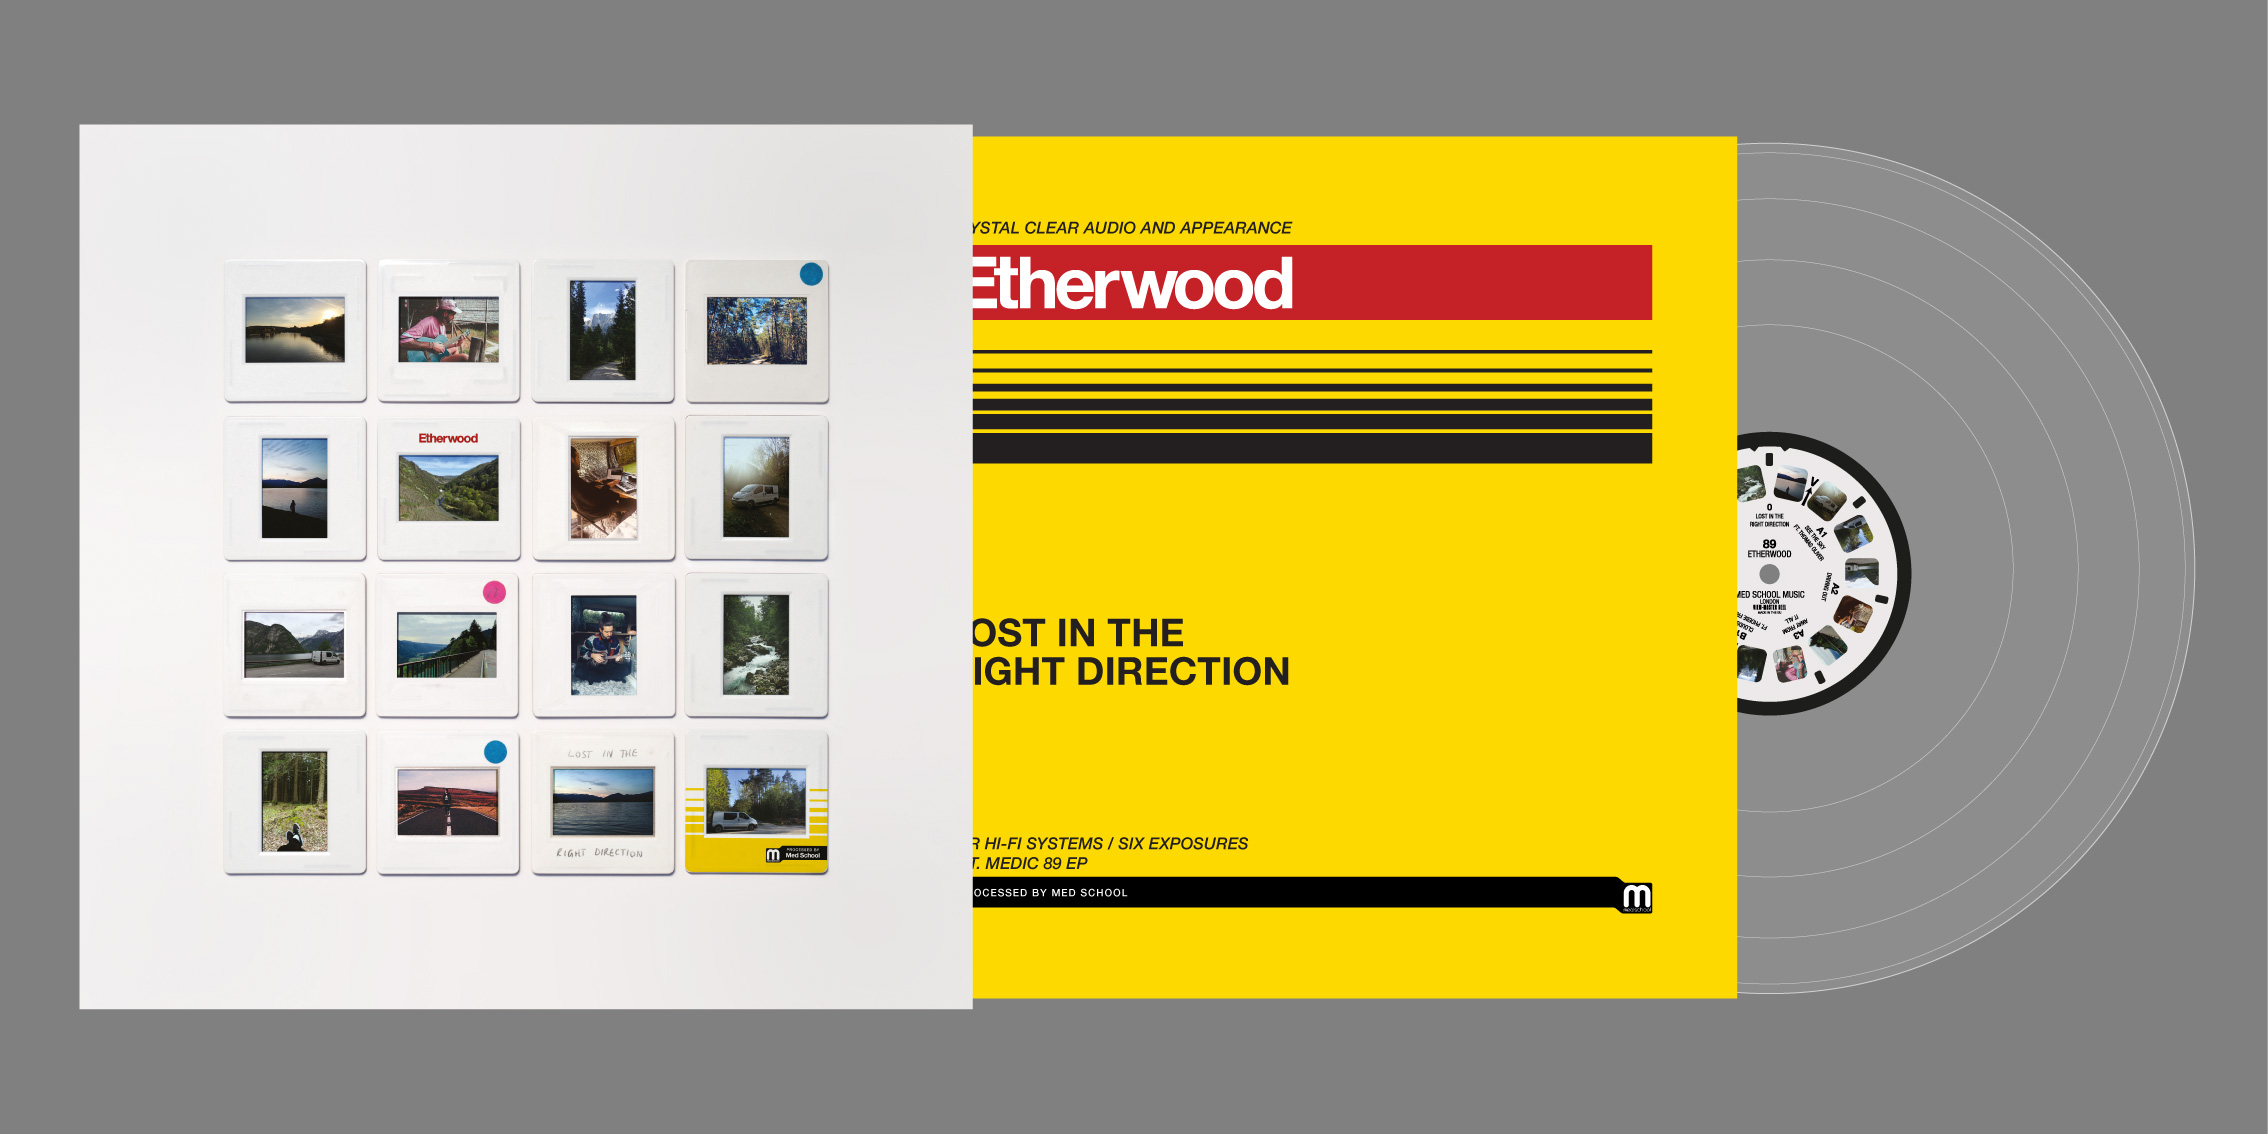 Etherwood's Lost In The Right Direction packaging